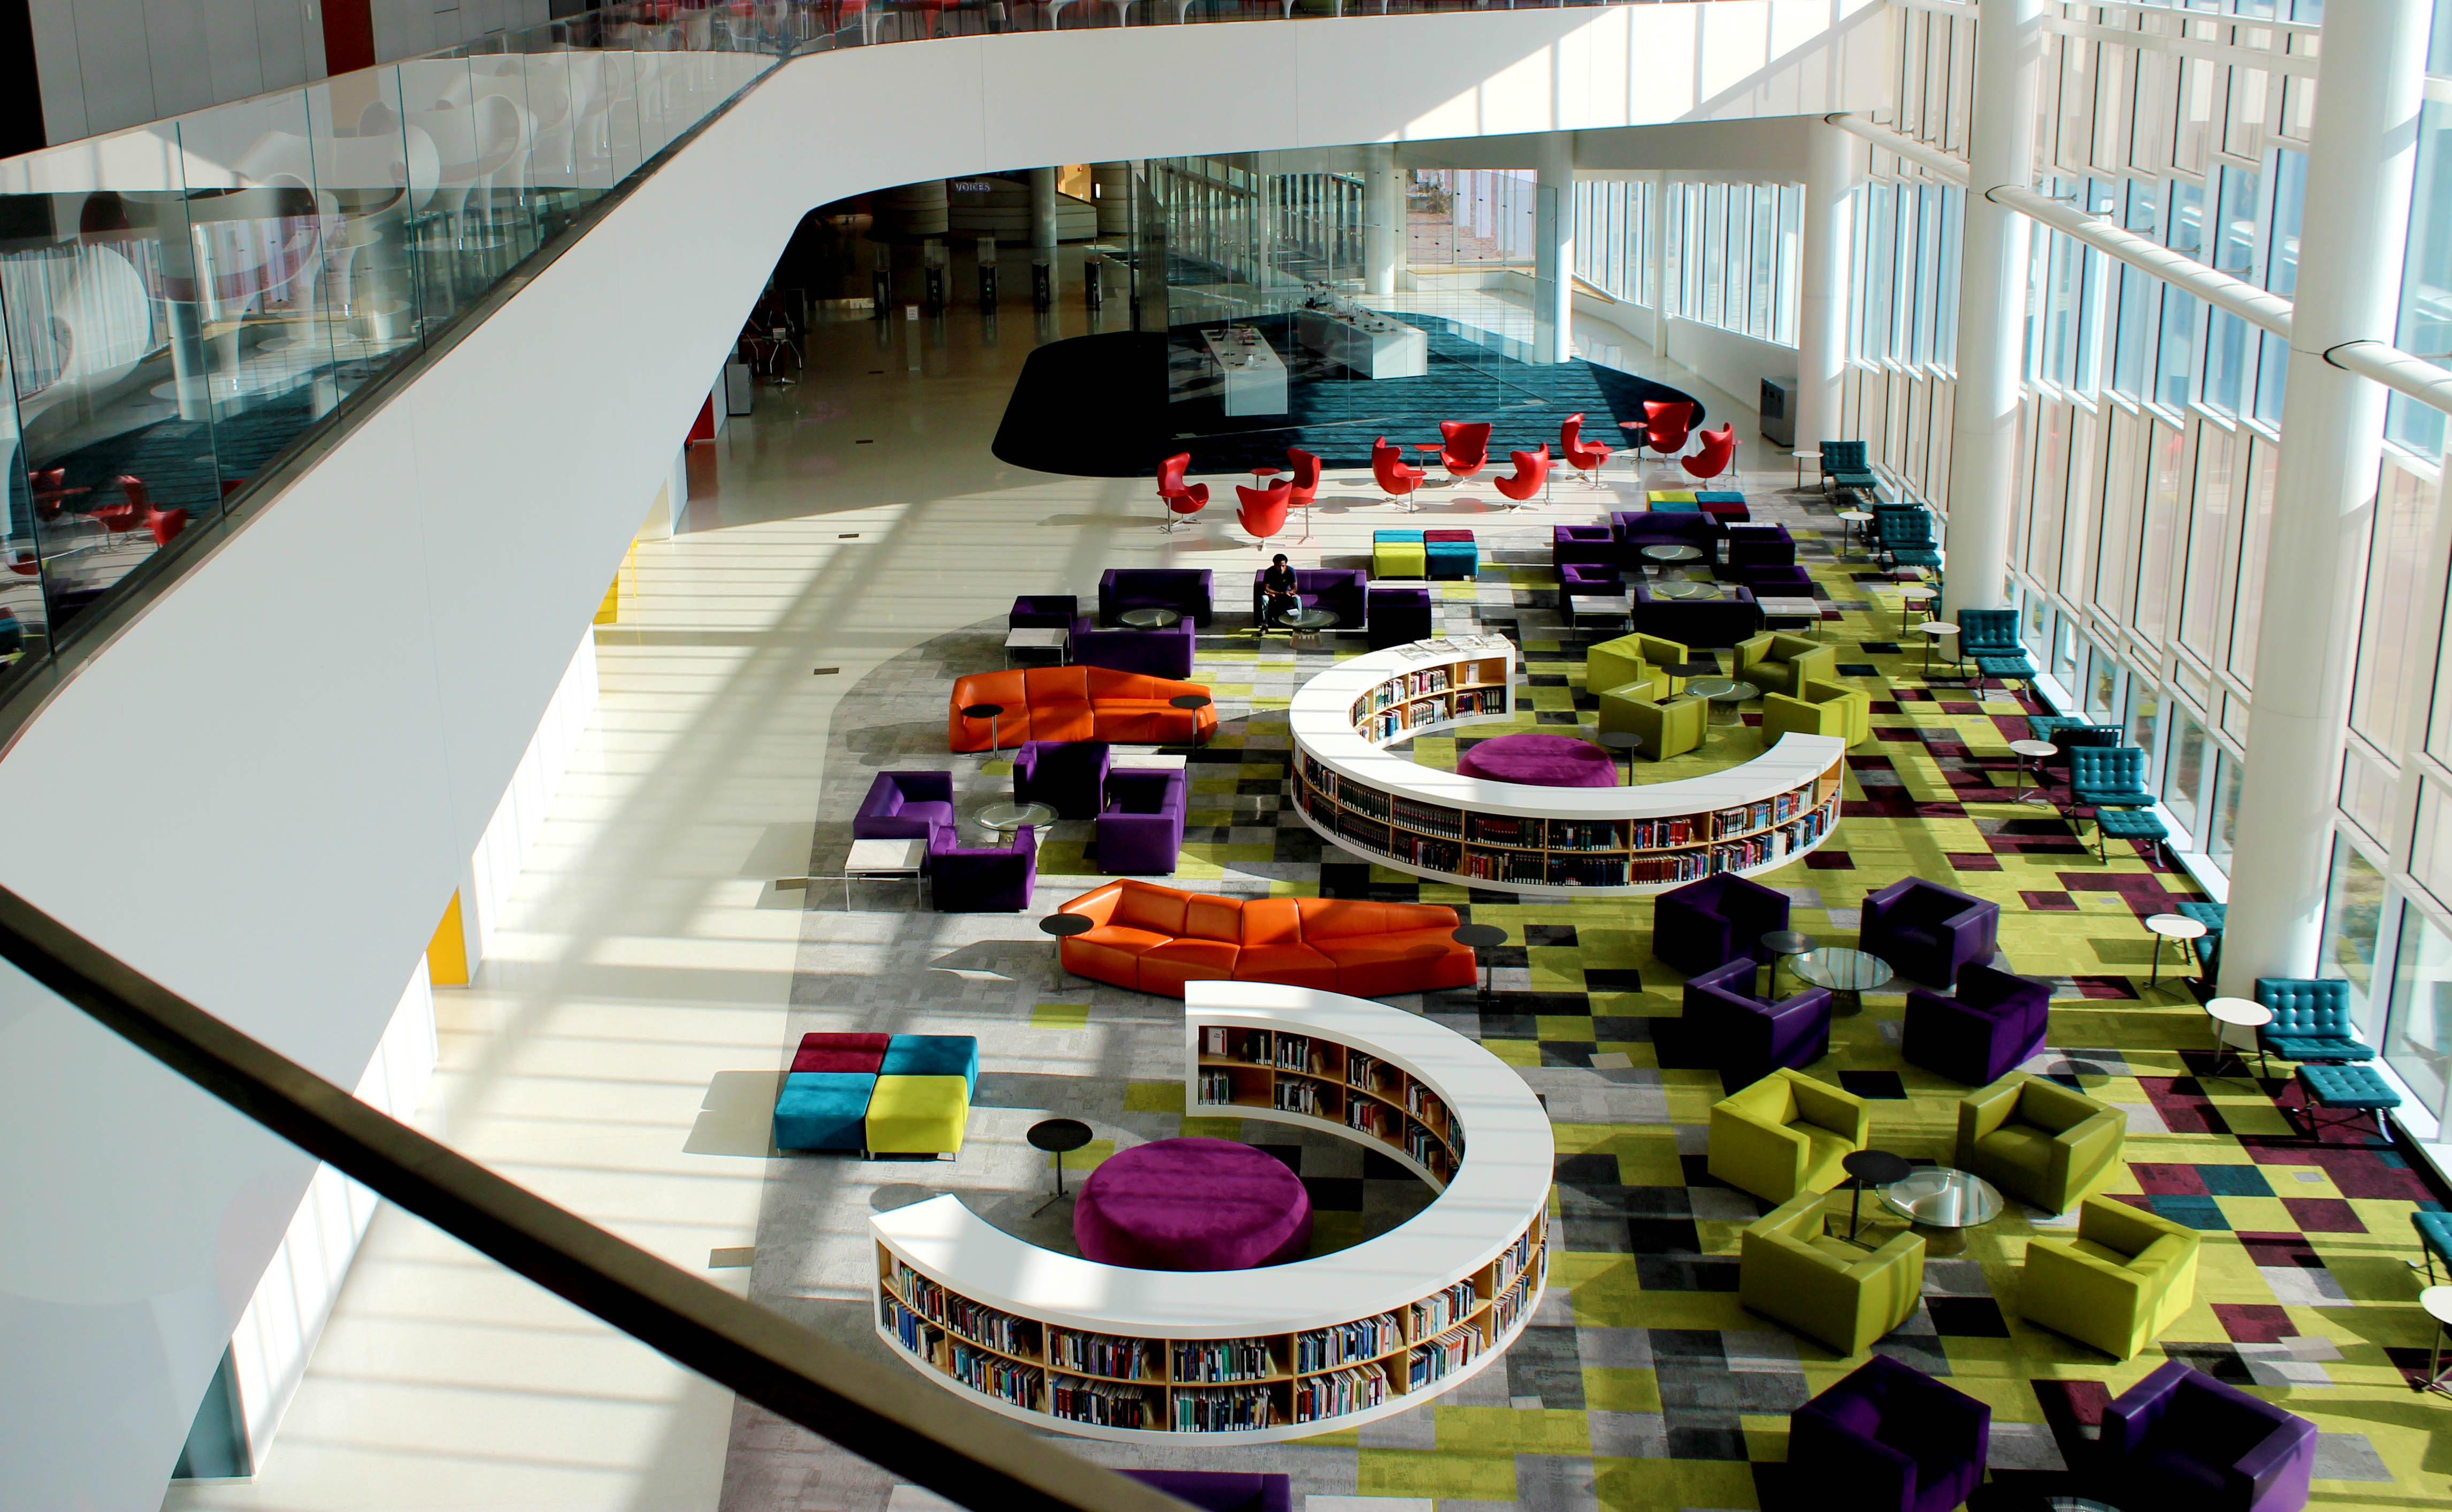 James B Hunt Jr Library at SKEMA's Raleigh campus